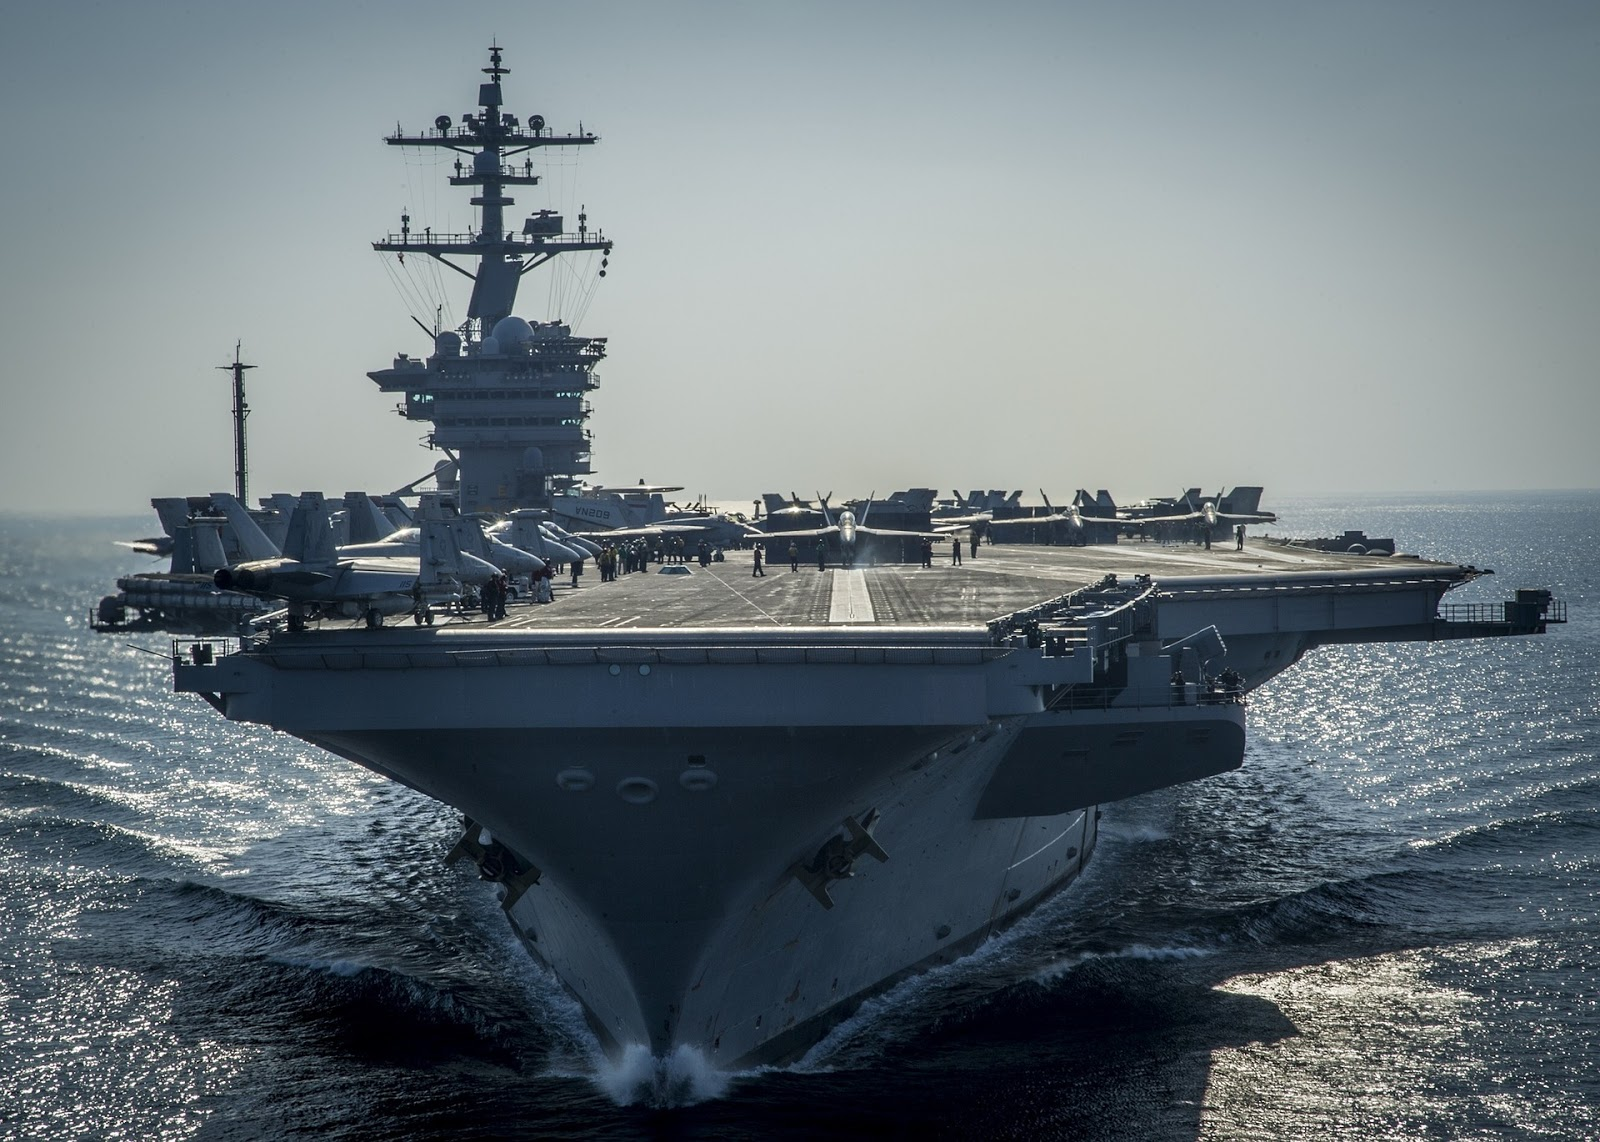 giant military aircraft carrier sailing on calm seas to illustrate movies about the U.S. navy